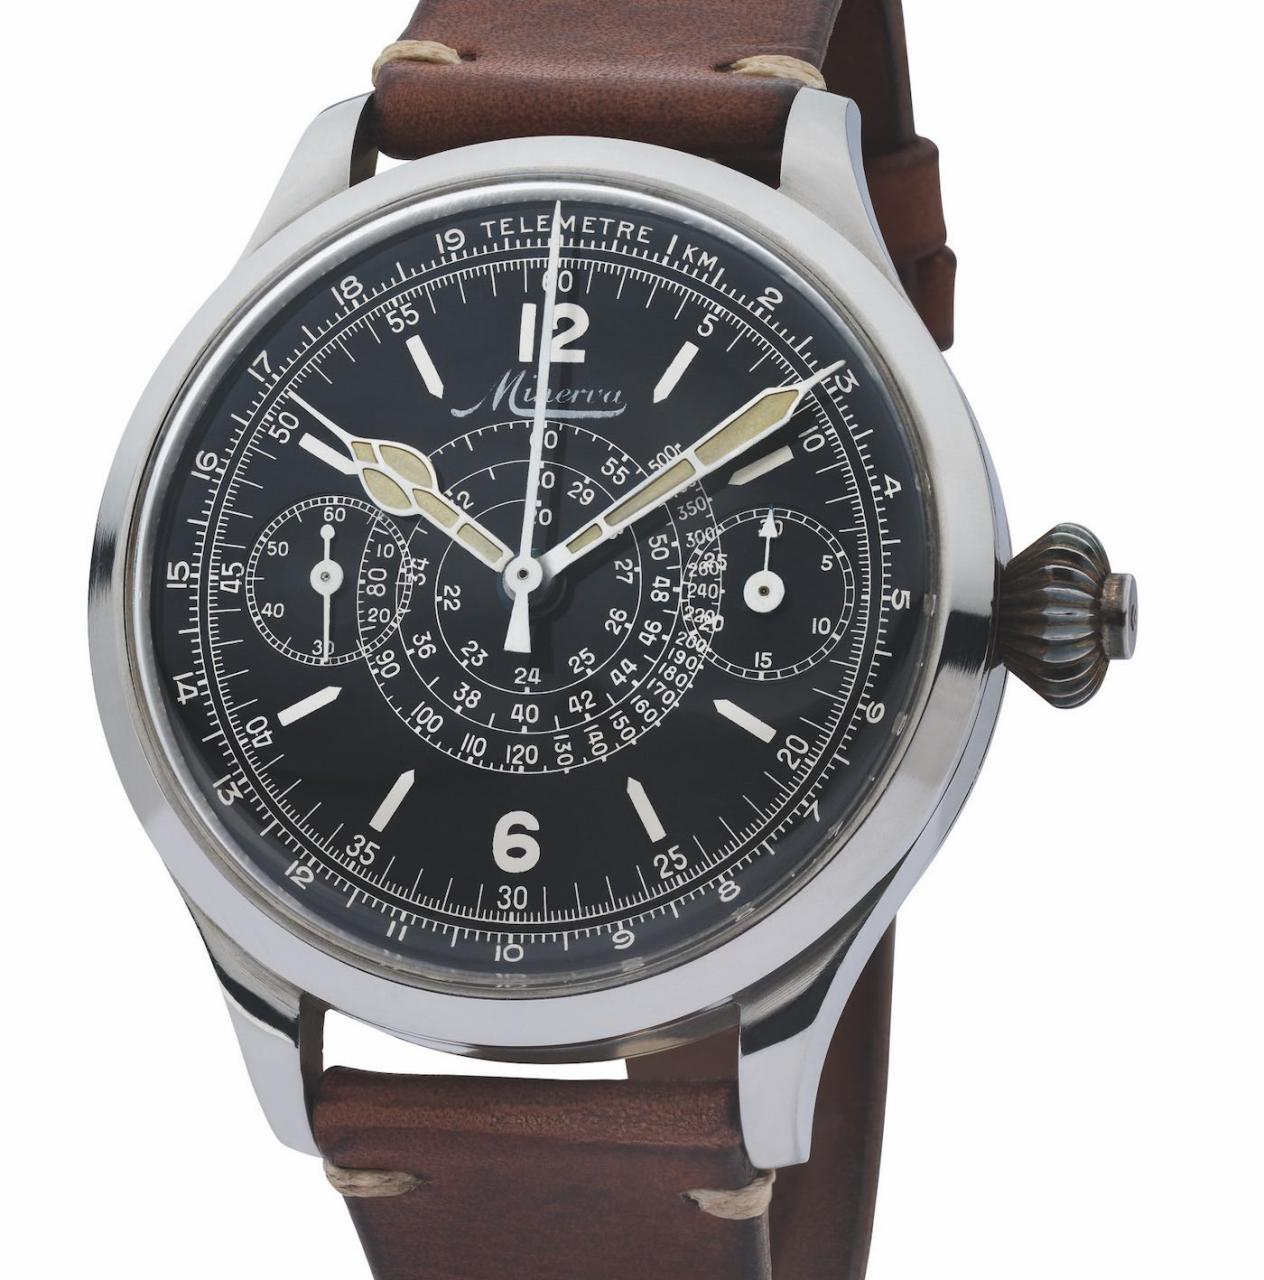 SES Montblanc 1858 Split Second Replica Watches Watch